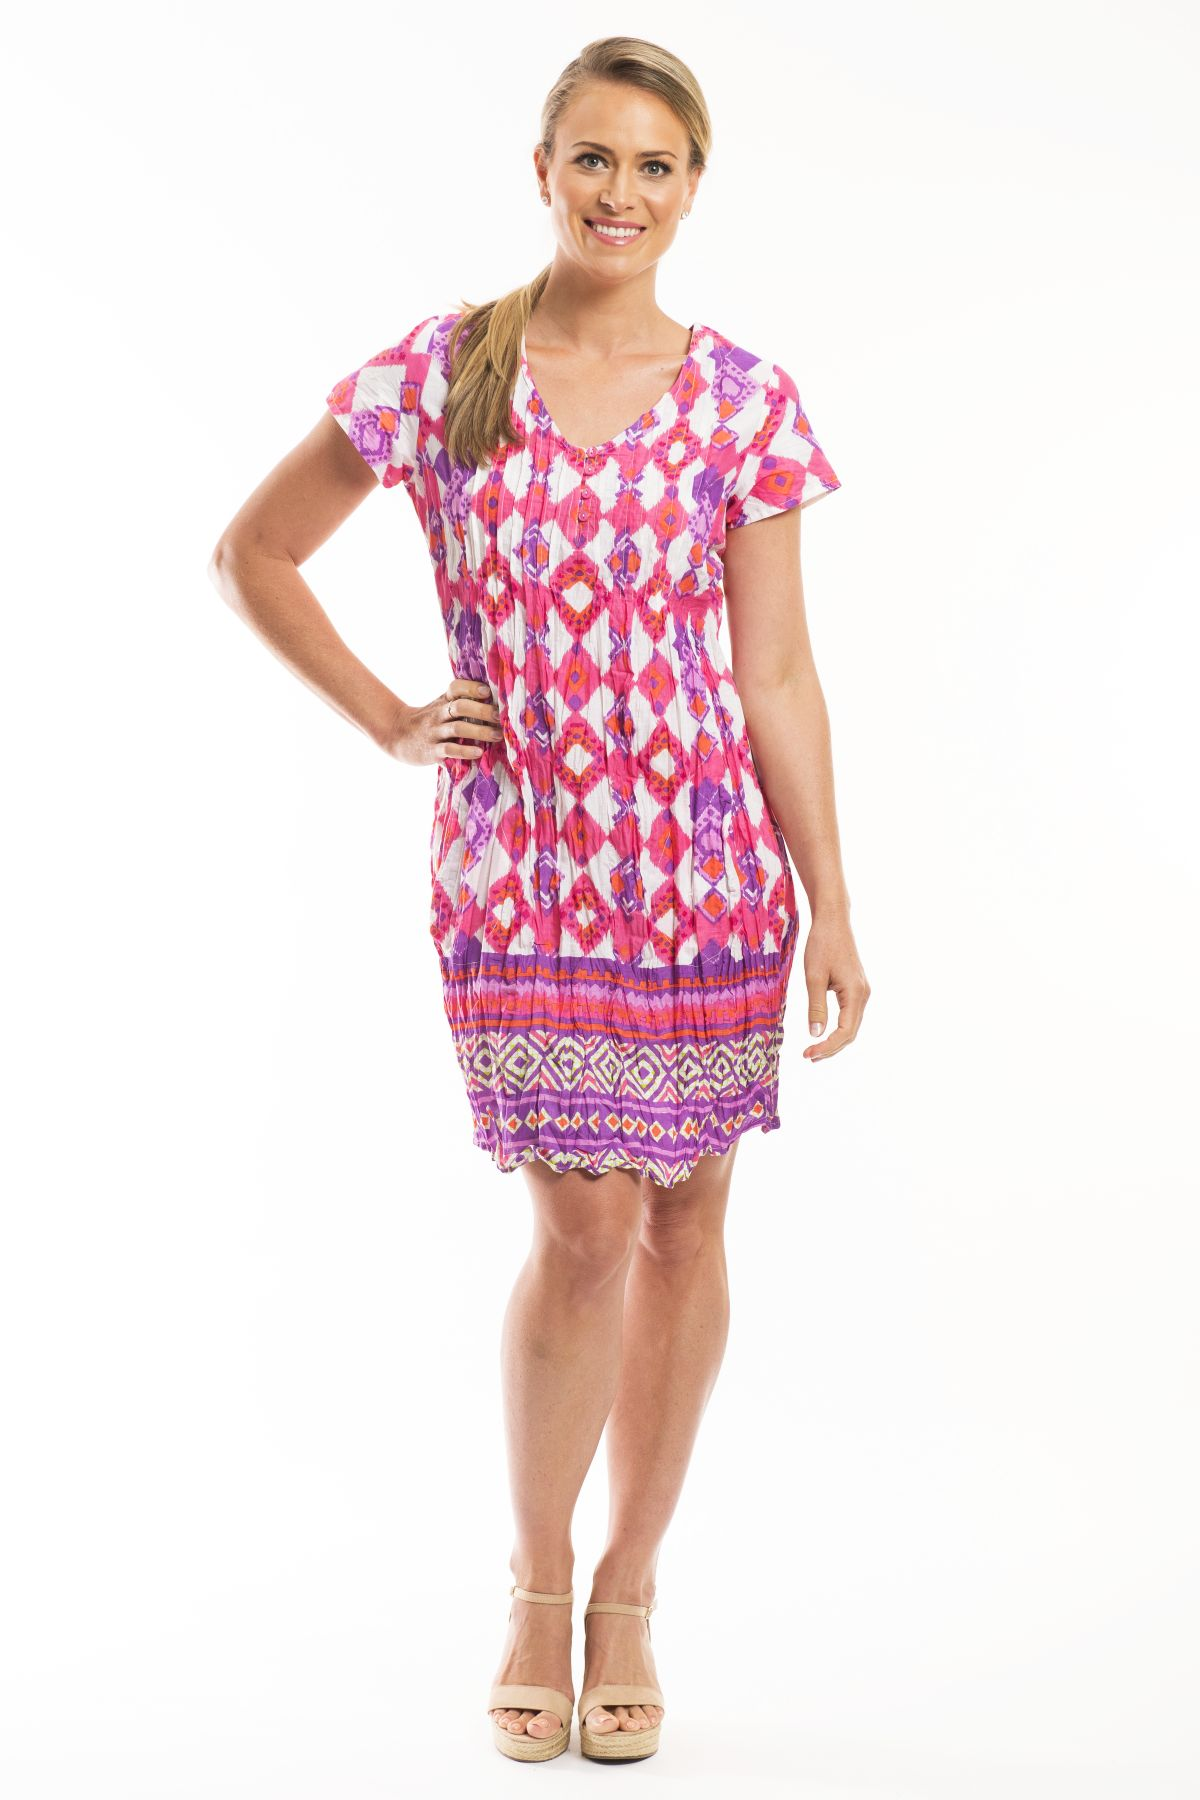 Jaipur Pink Pattern Tunic Dress - at I Love Tunics @ www.ilovetunics.com = Number One! Tunics Destination